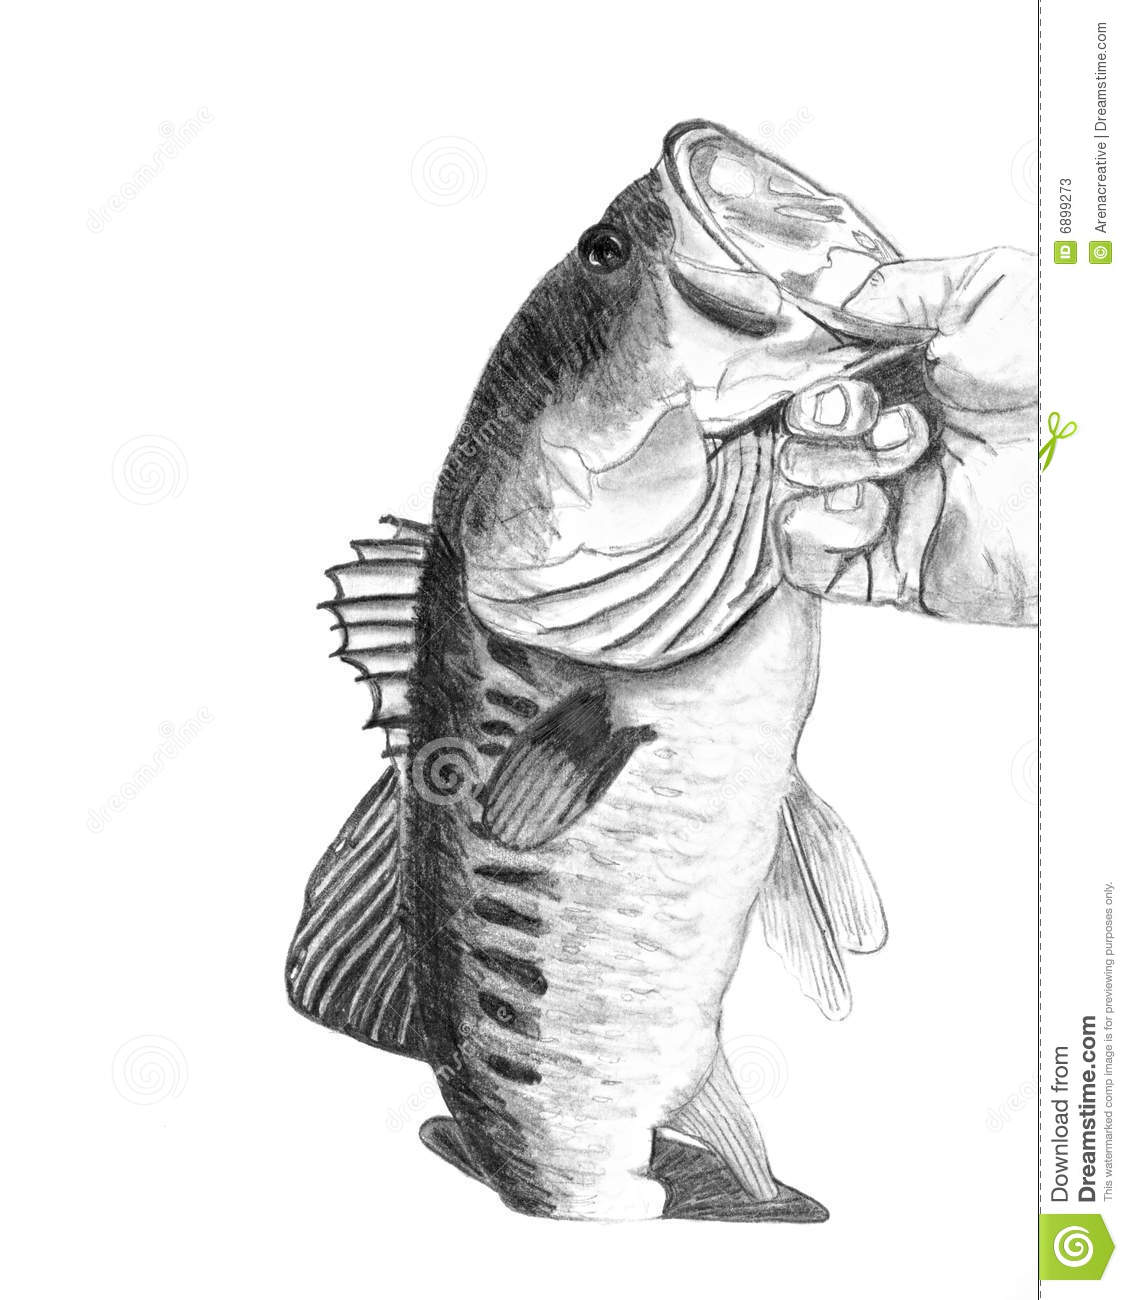 Bass Fish Drawing Stock Photos Image 6899273